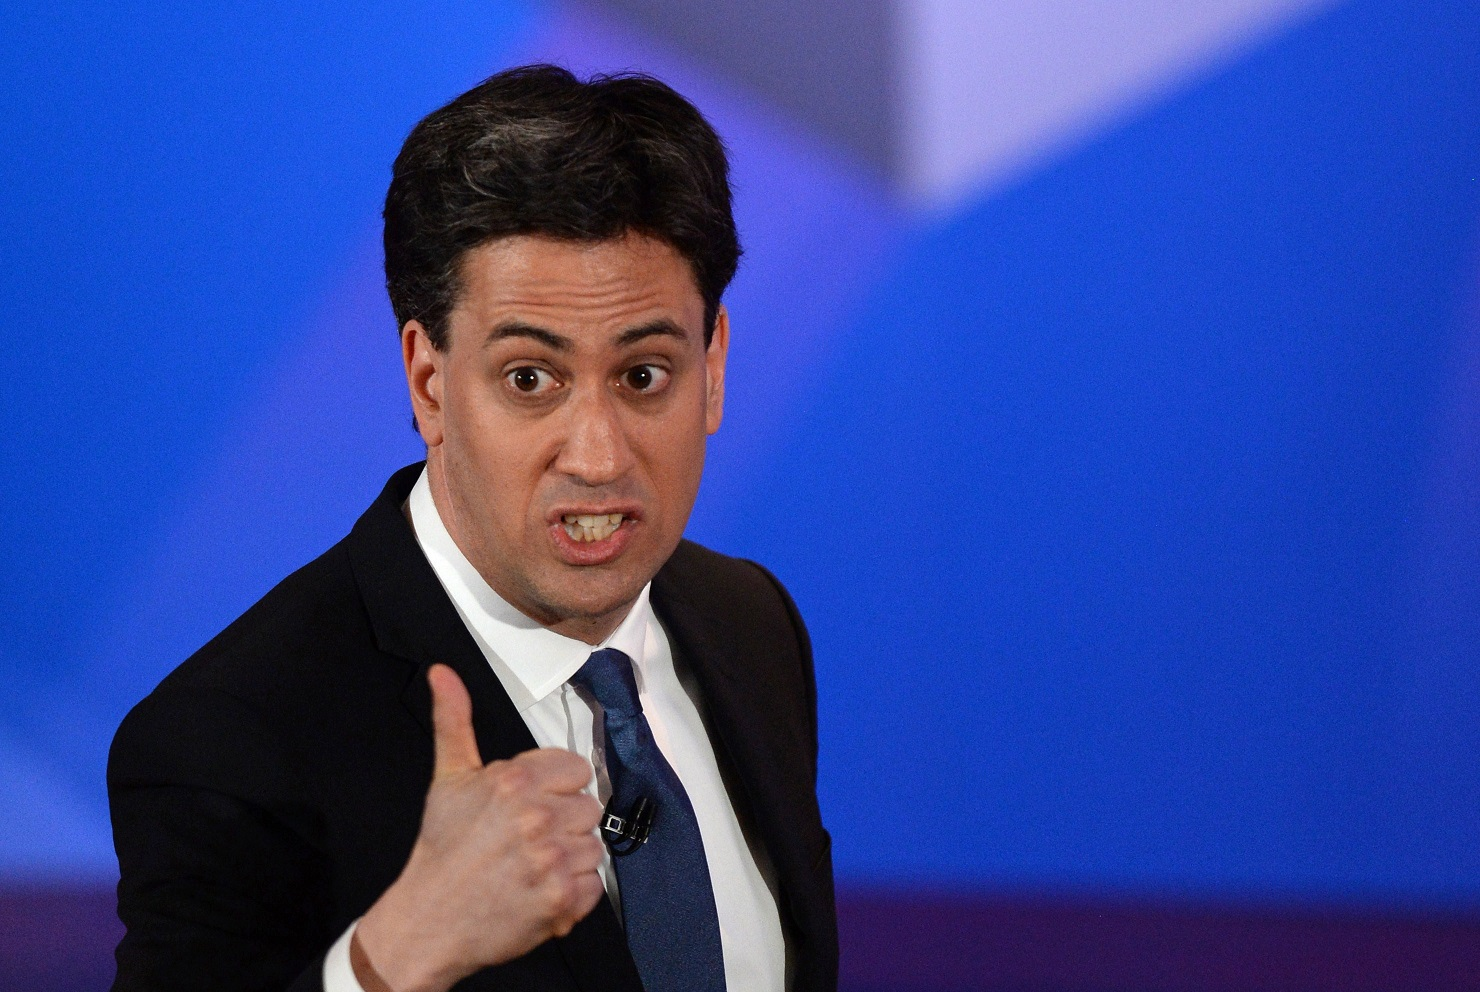 Ed Miliband on BBC Question Time